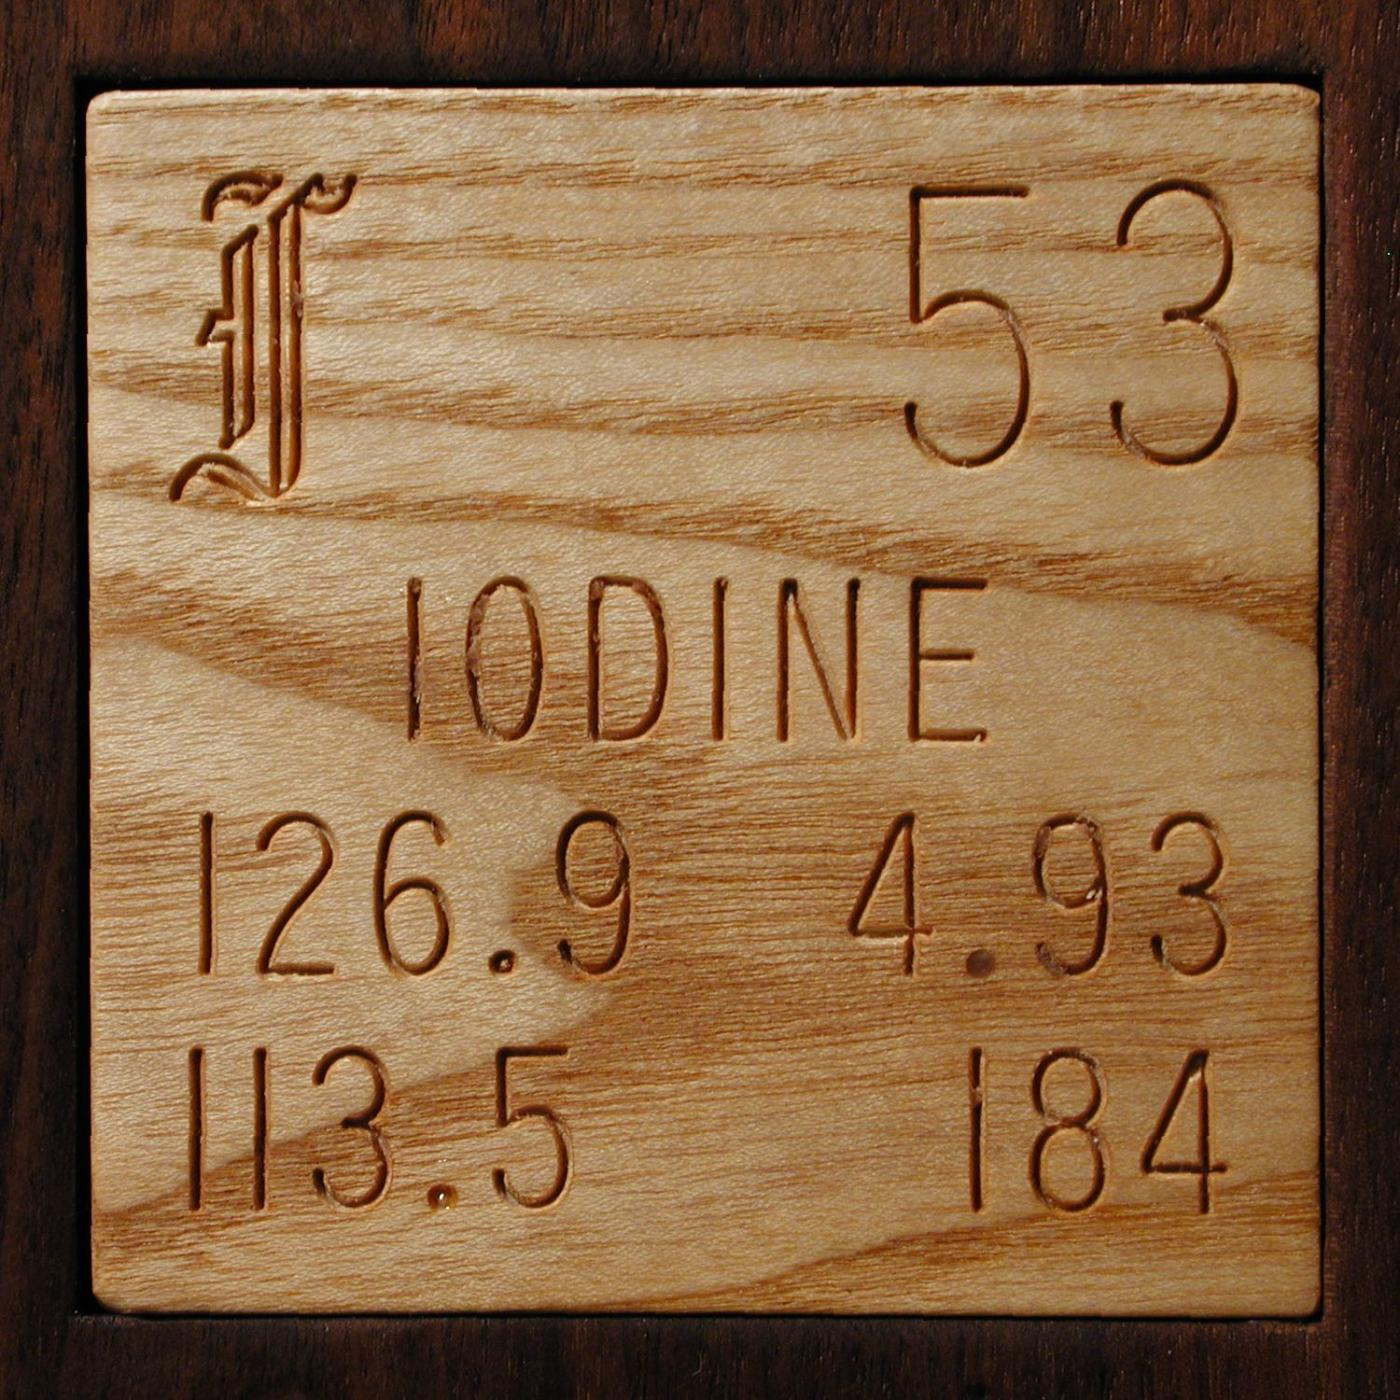 Facts pictures stories about the element iodine in the periodic table iodine urtaz Choice Image